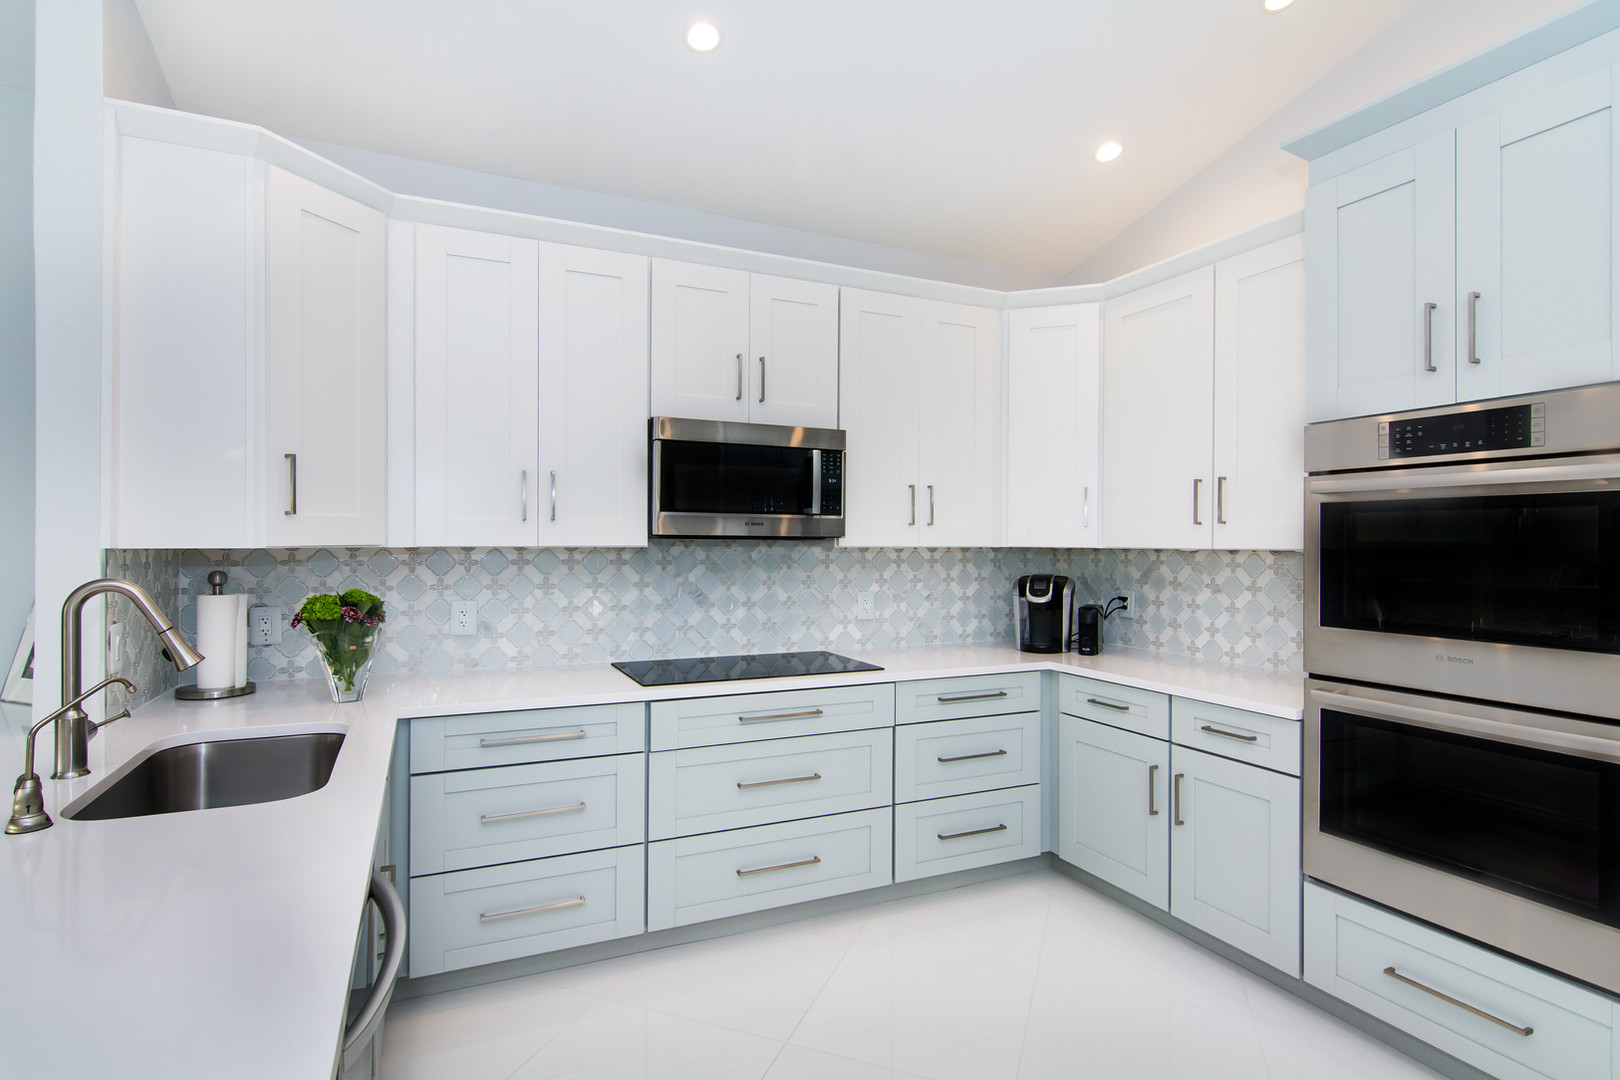 Modern and contemporary kitchen design with two tone cabinets, gray and white